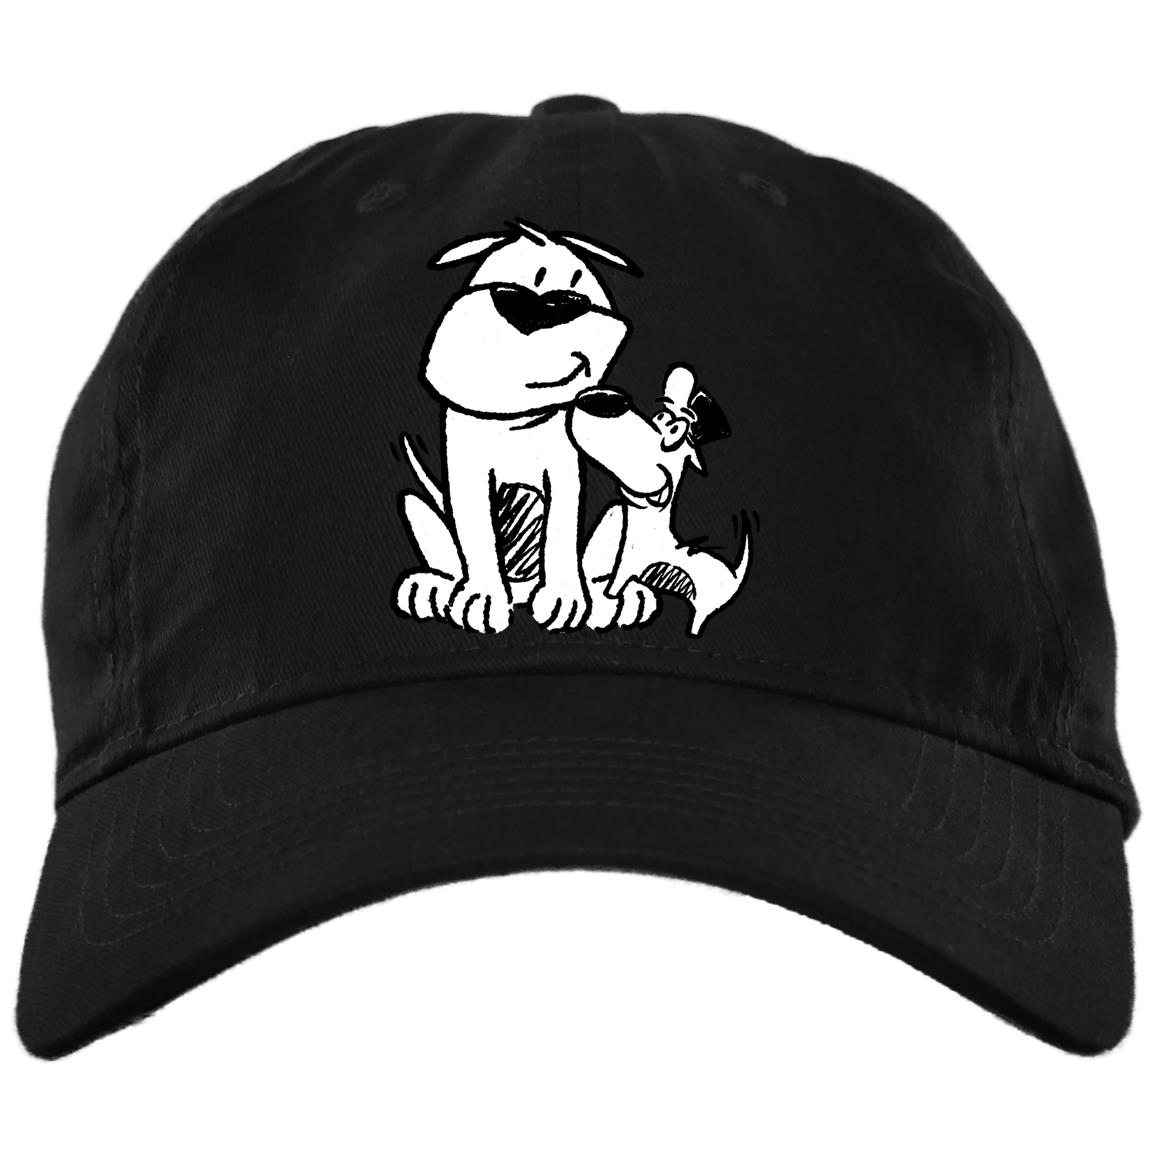 'I'll Be There For You' 💕 ResQ & Mischief Friends Cap 🐾  Deal 24% Off!